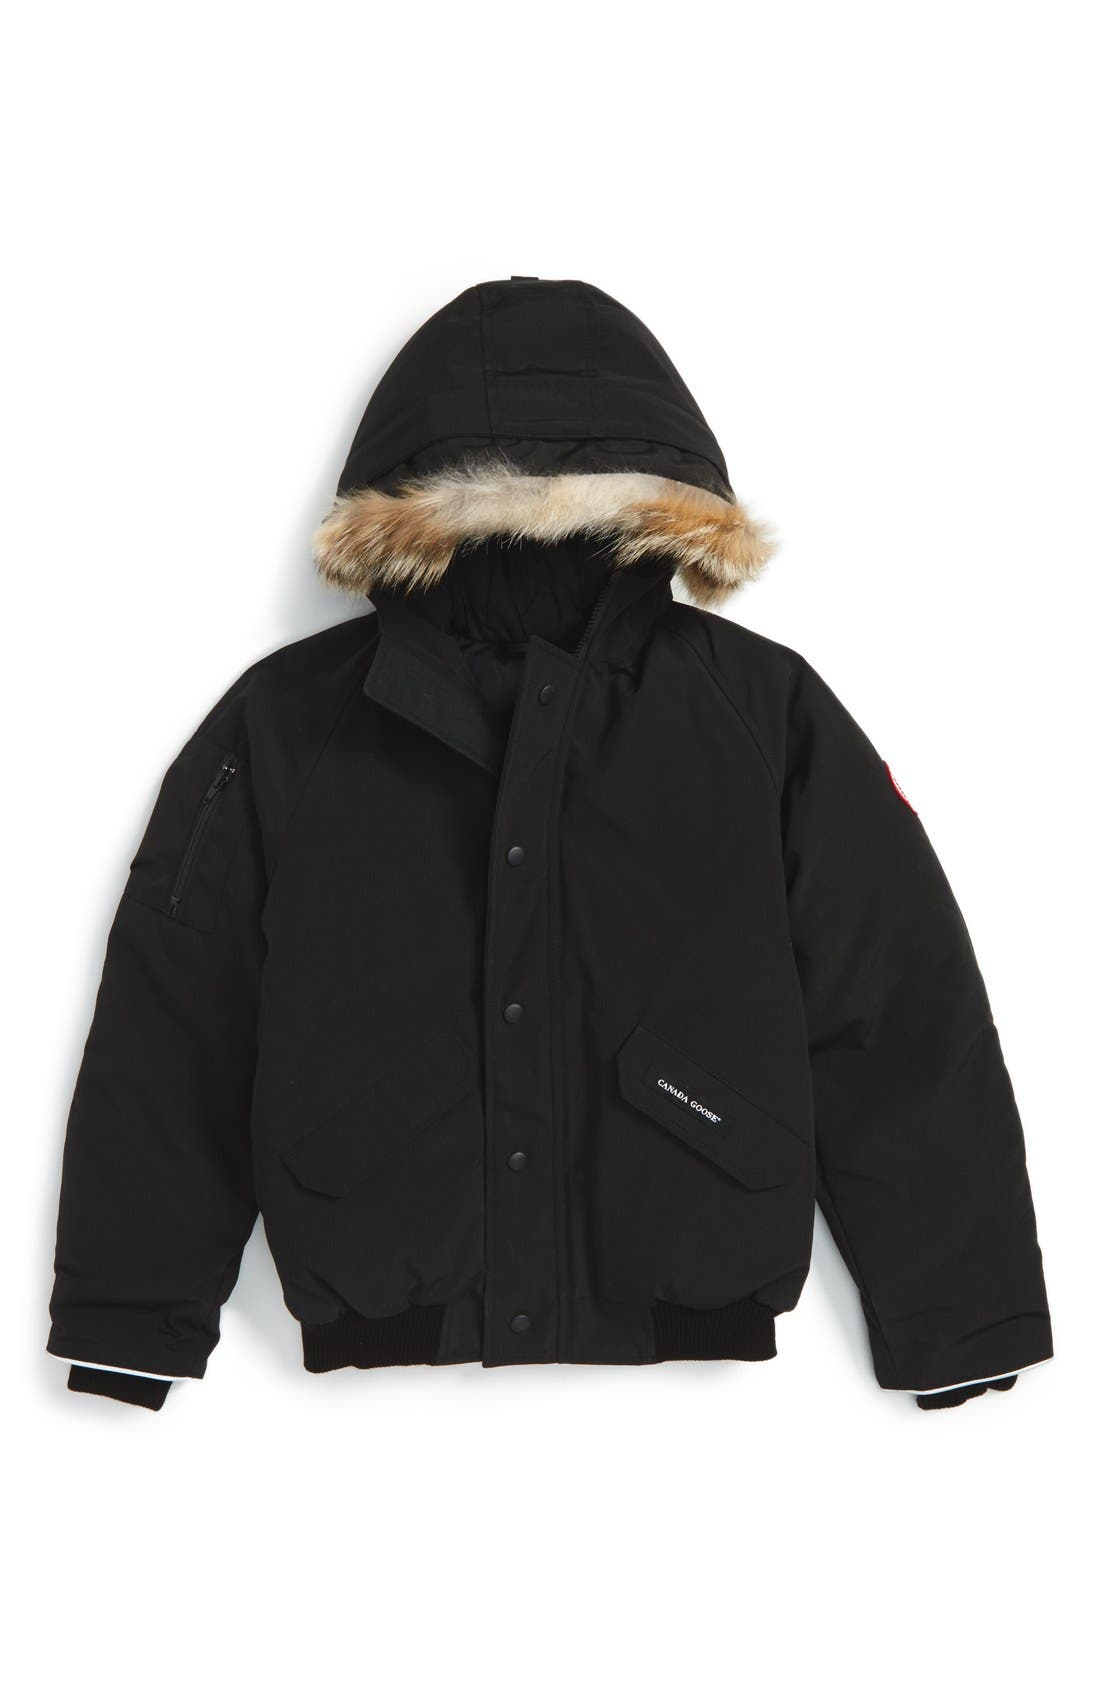 Kids Canada Goose Rundle Down Bomber Jacket With Genuine Coyote Fur Trim Size L (1416)  Black